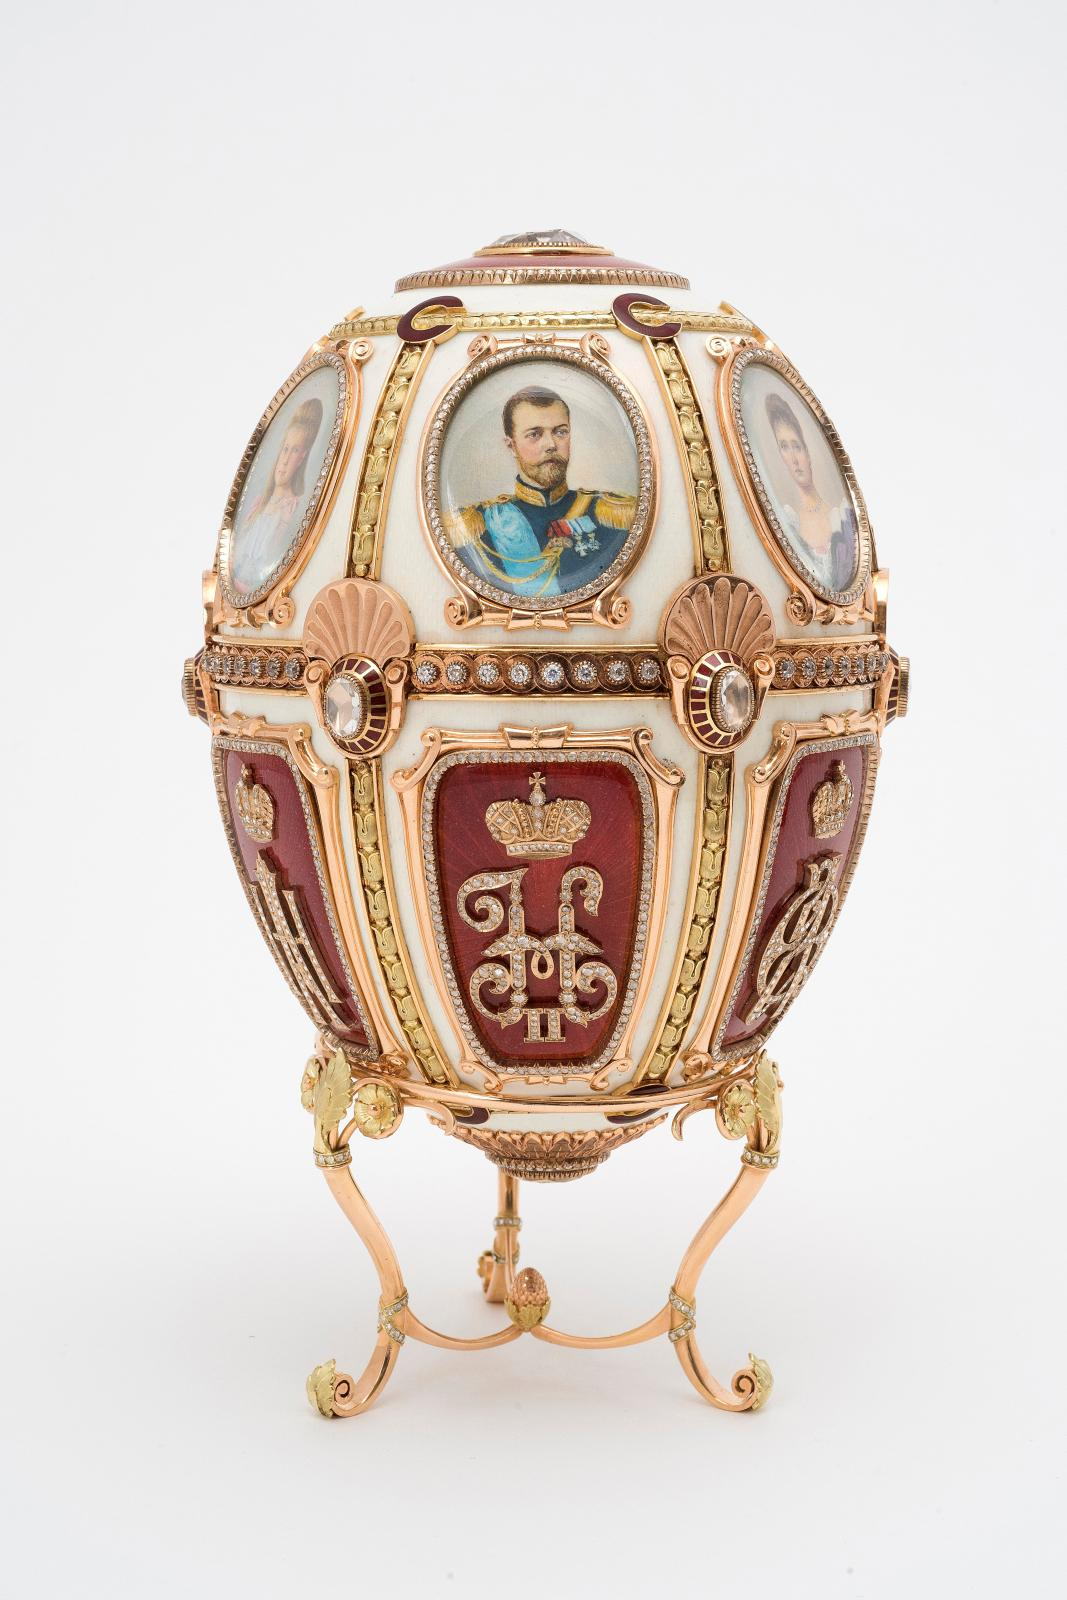 "Fabergé company, workshop of M. Perxine and G. Vigstrem, St Petersburg, ""Jubilee Egg"", 1904, gold, diamonds, brilliants, enamel on guilloché backgroun"